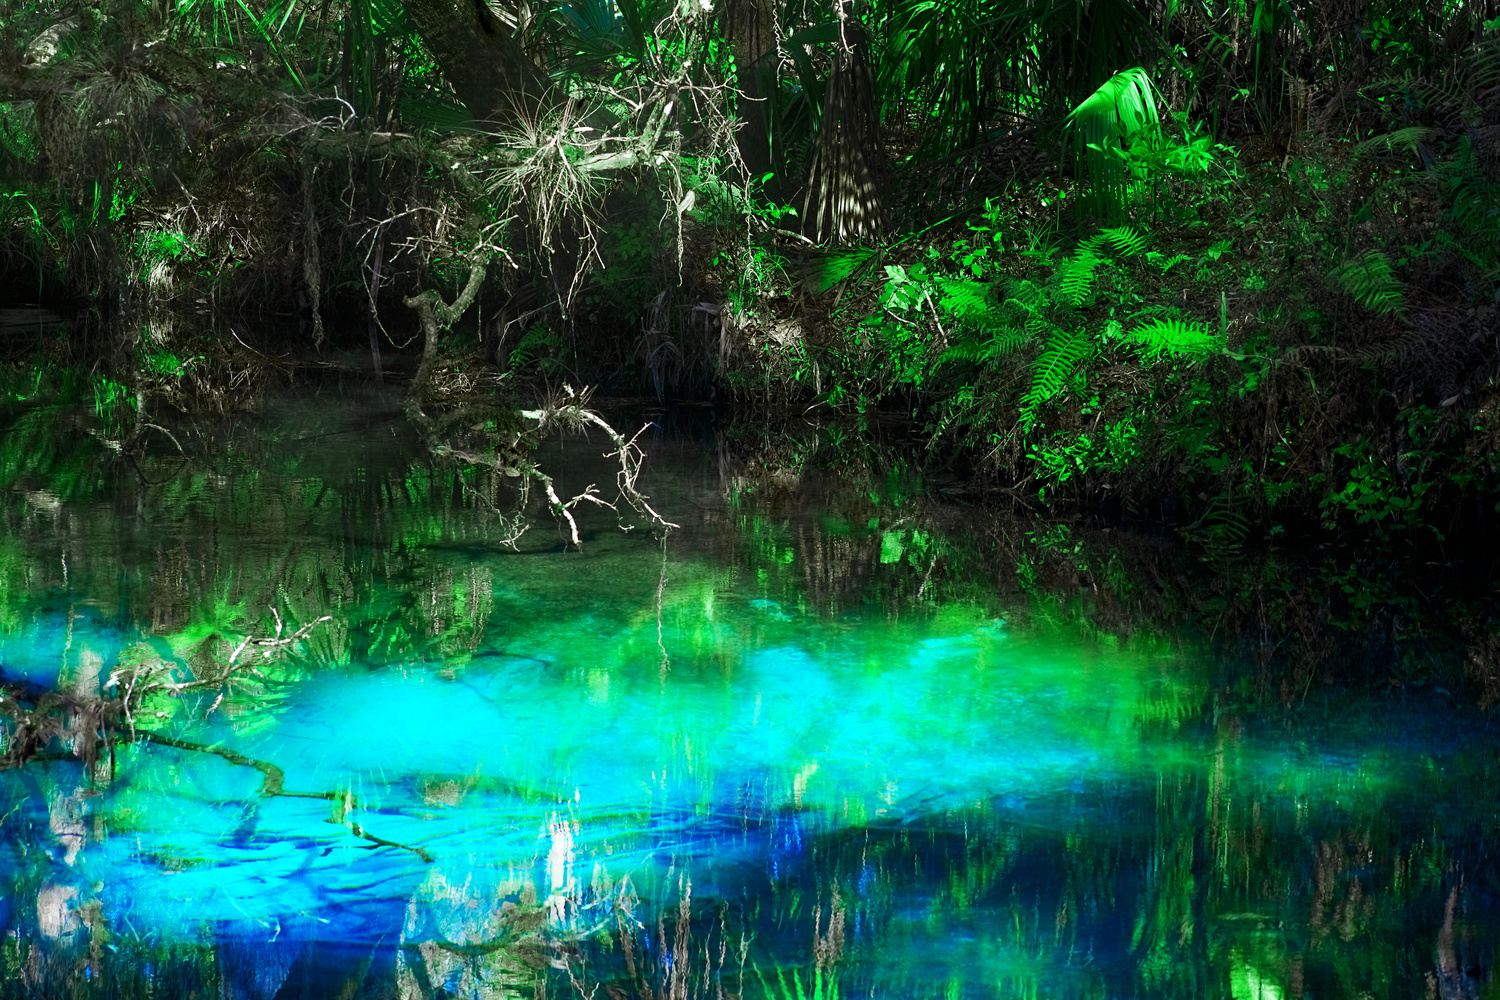 Reflections at Juniper Springs by Tong Thao